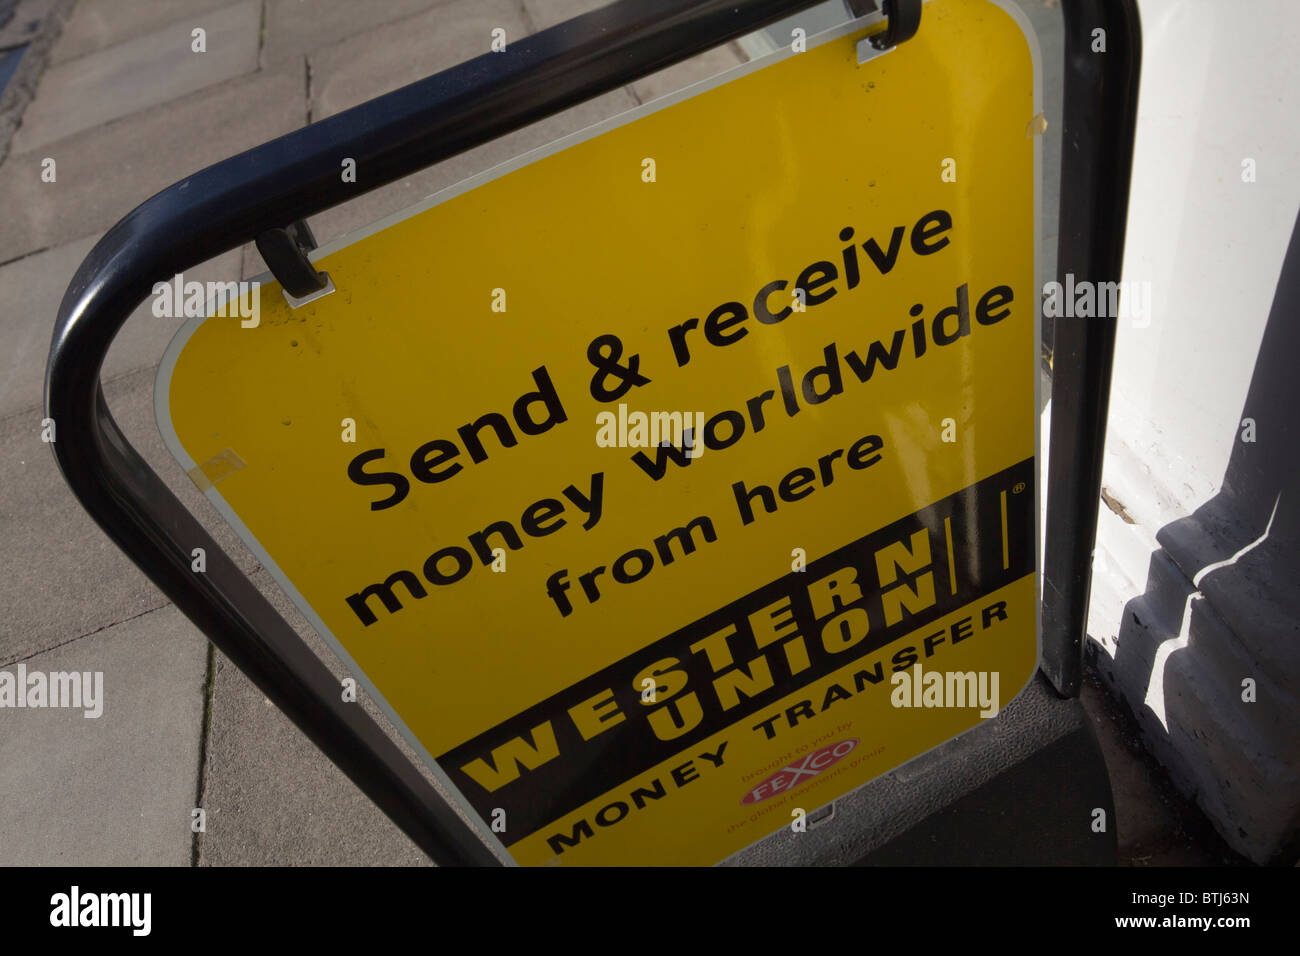 Western Union Sign Stock Photos & Western Union Sign Stock